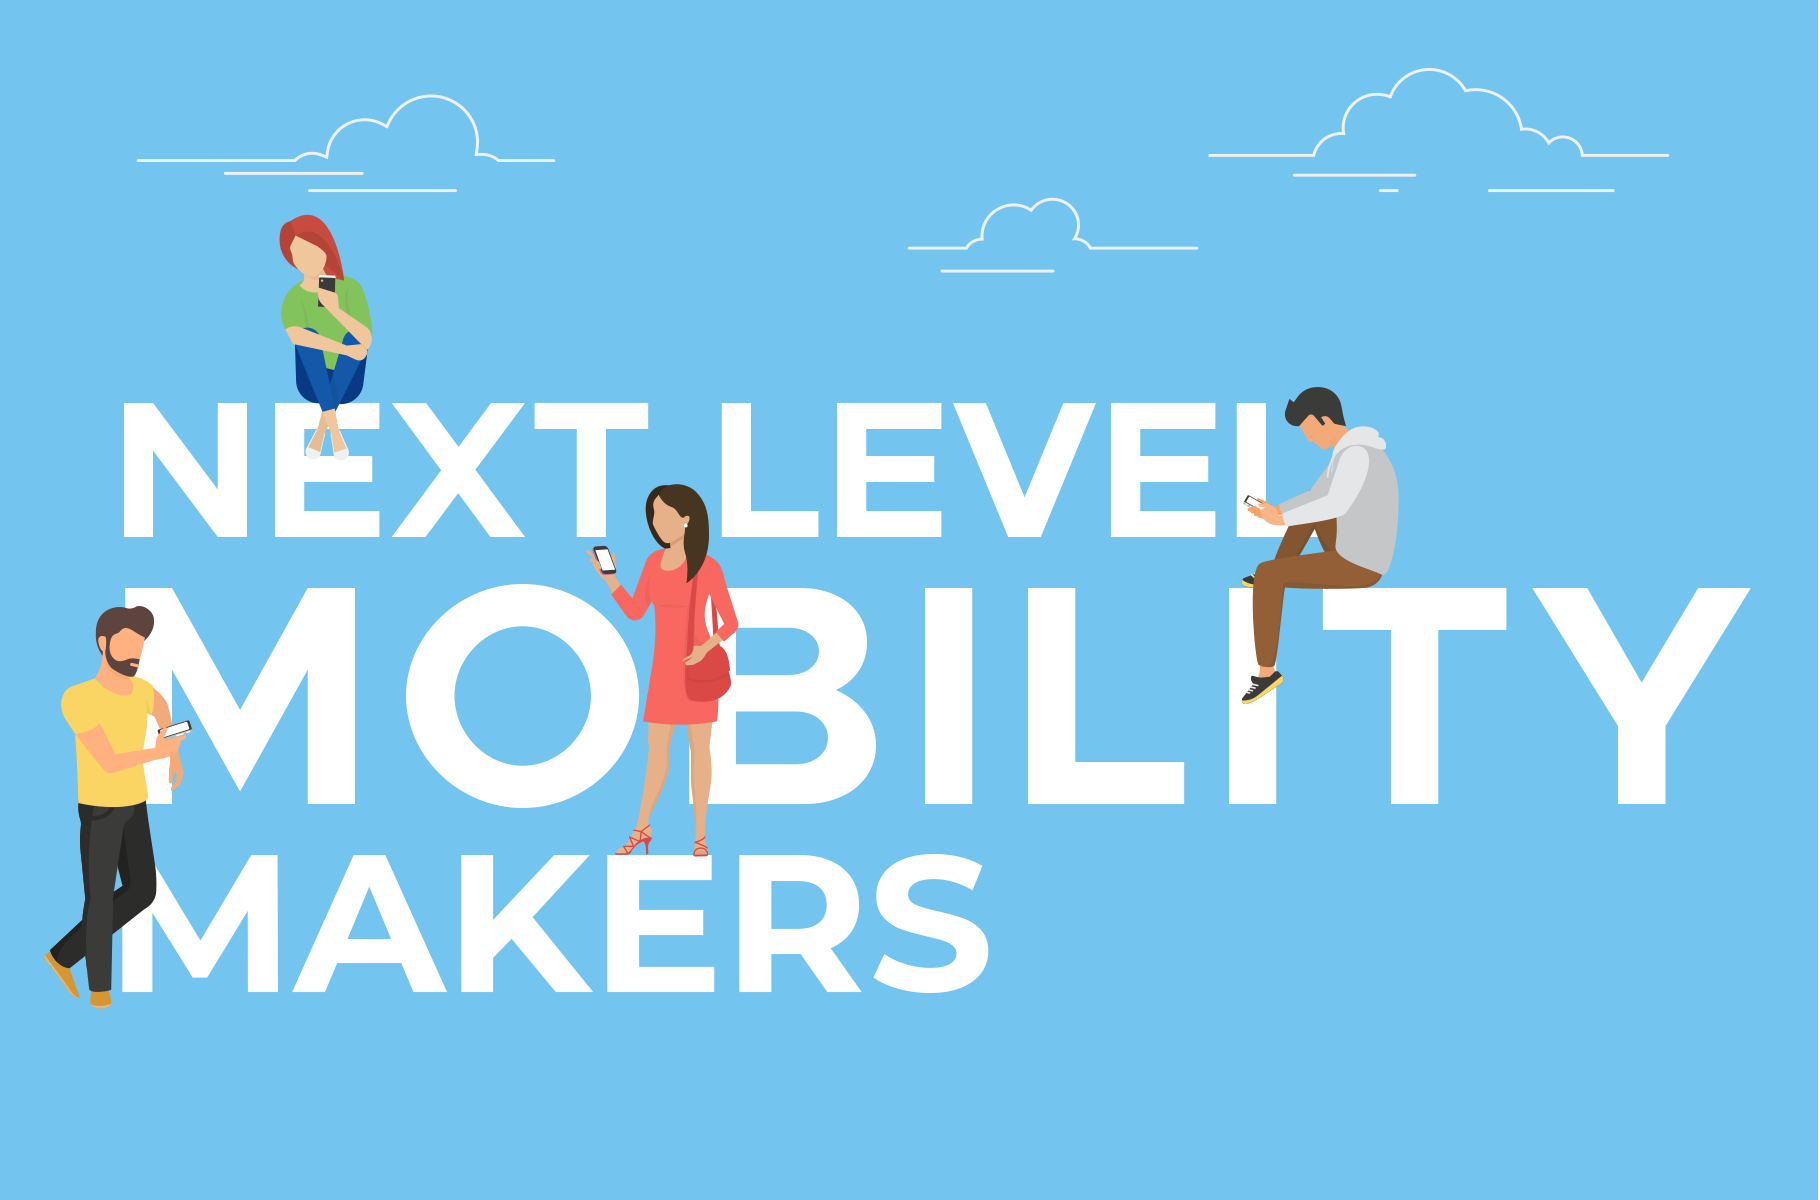 UP_190304_nextlevelmobilitymakers_sujet.png